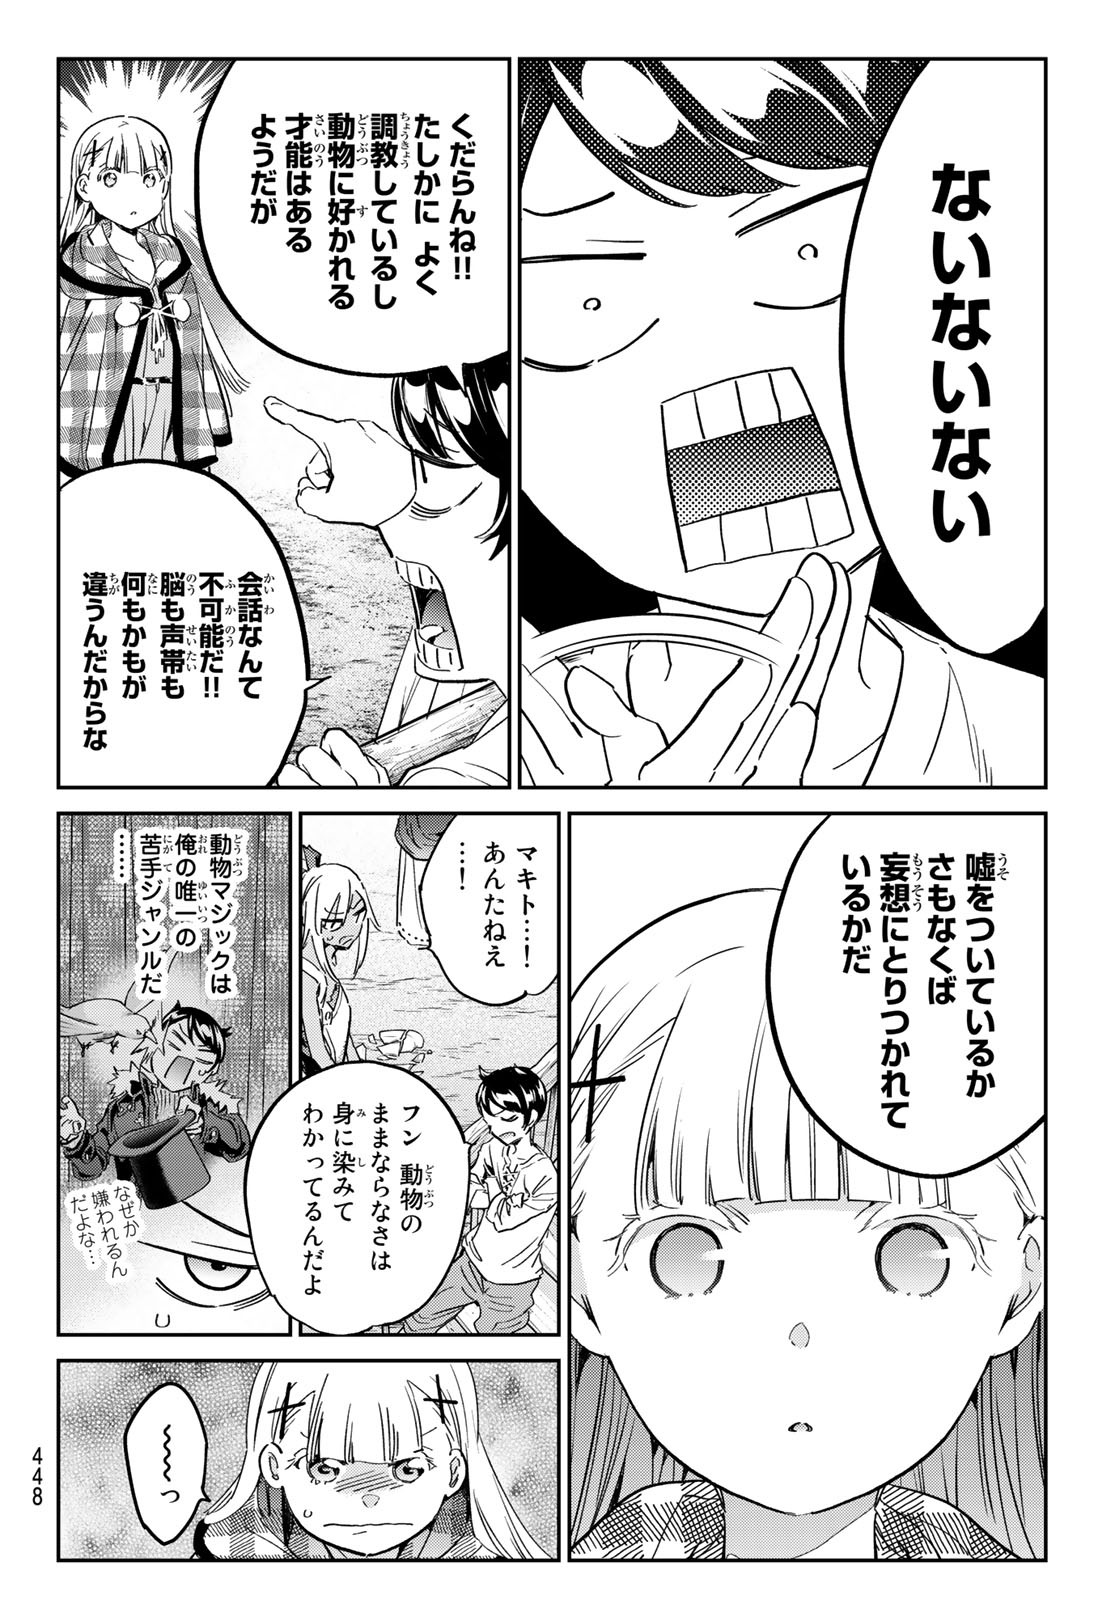 Manga Raw Tricks Dedicated to Witches Chapter 24